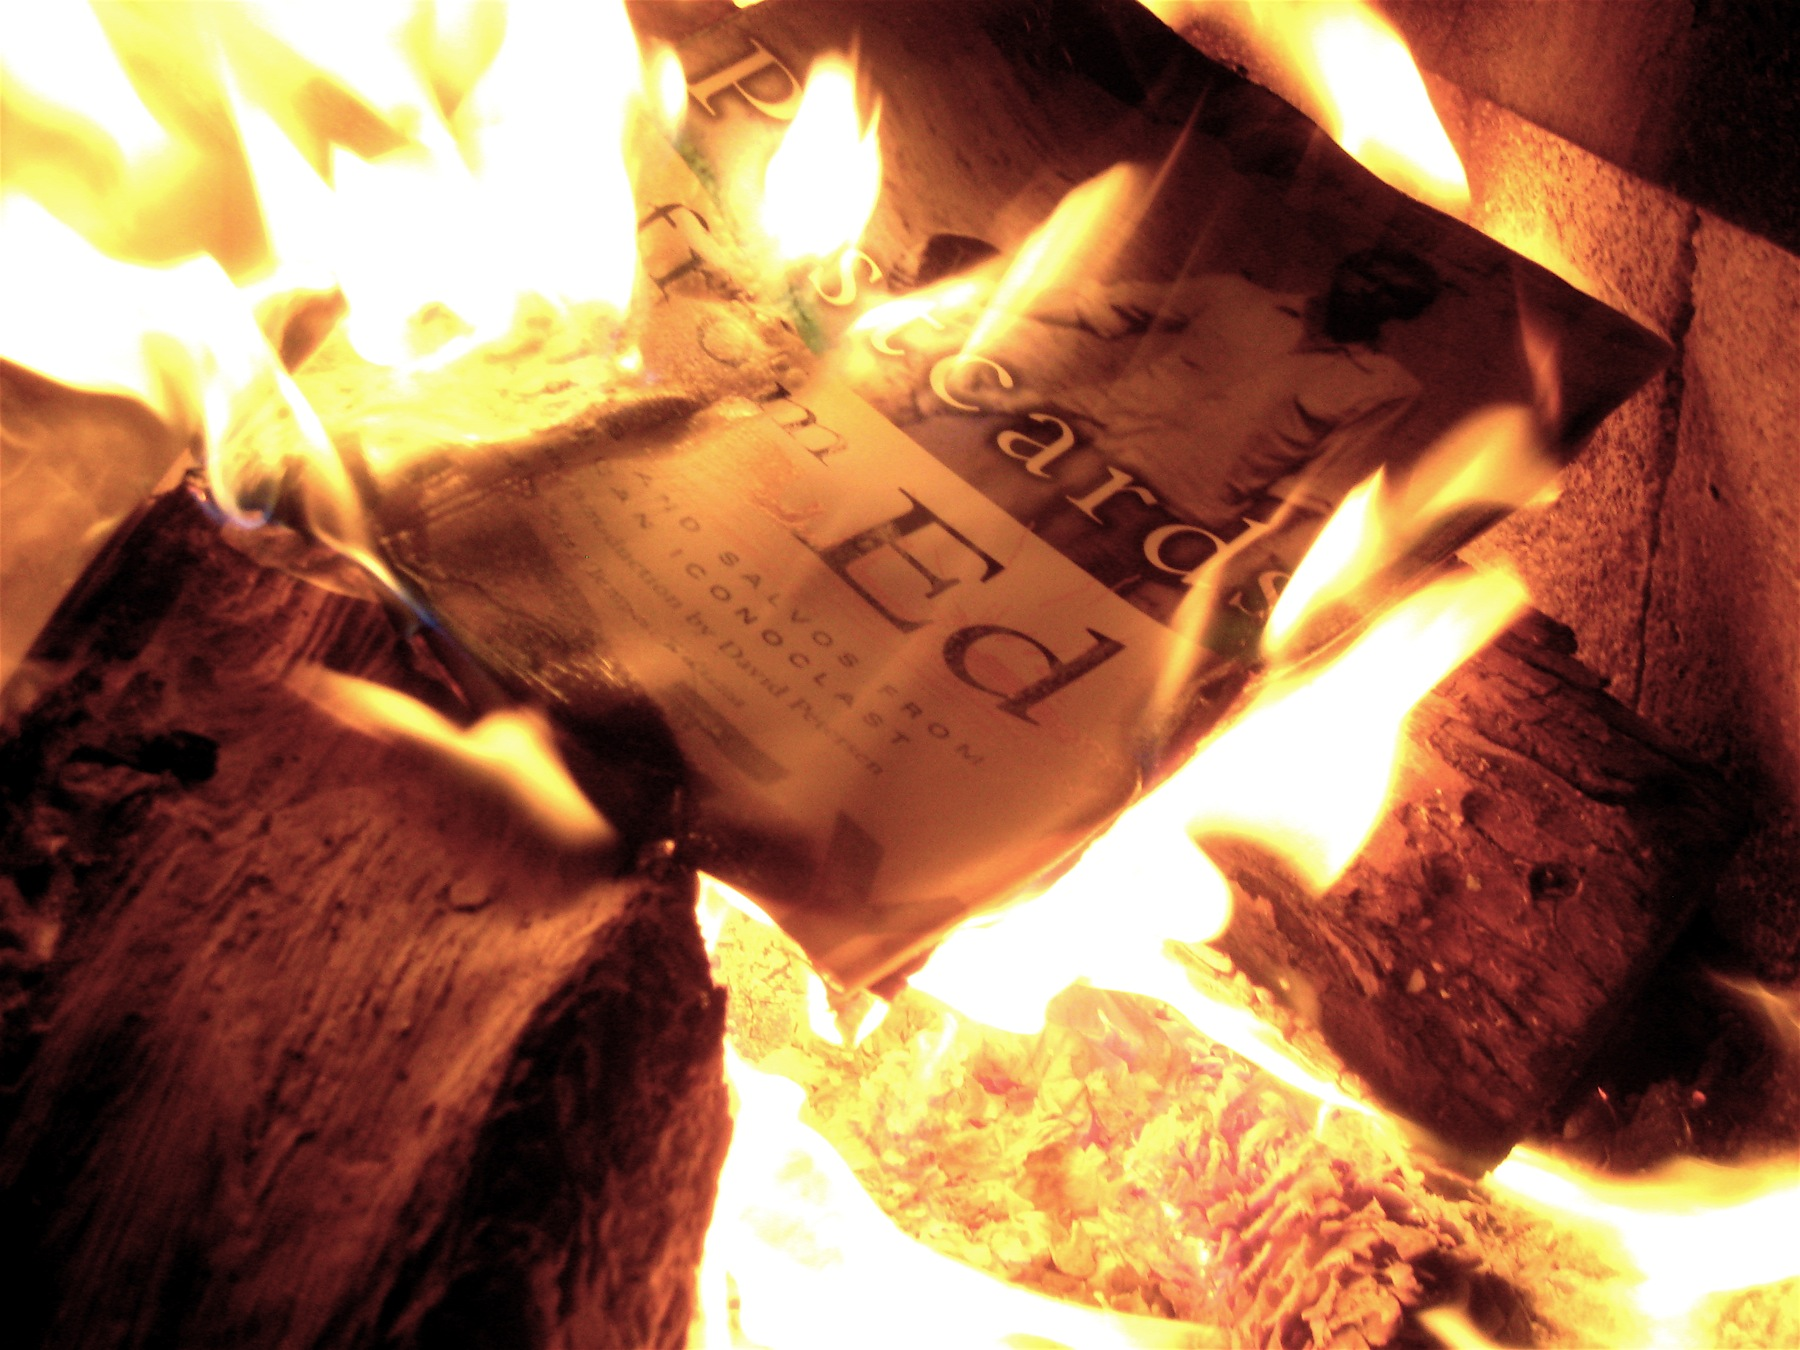 Americans Shatter Book-Burning Record on Read Across America Day